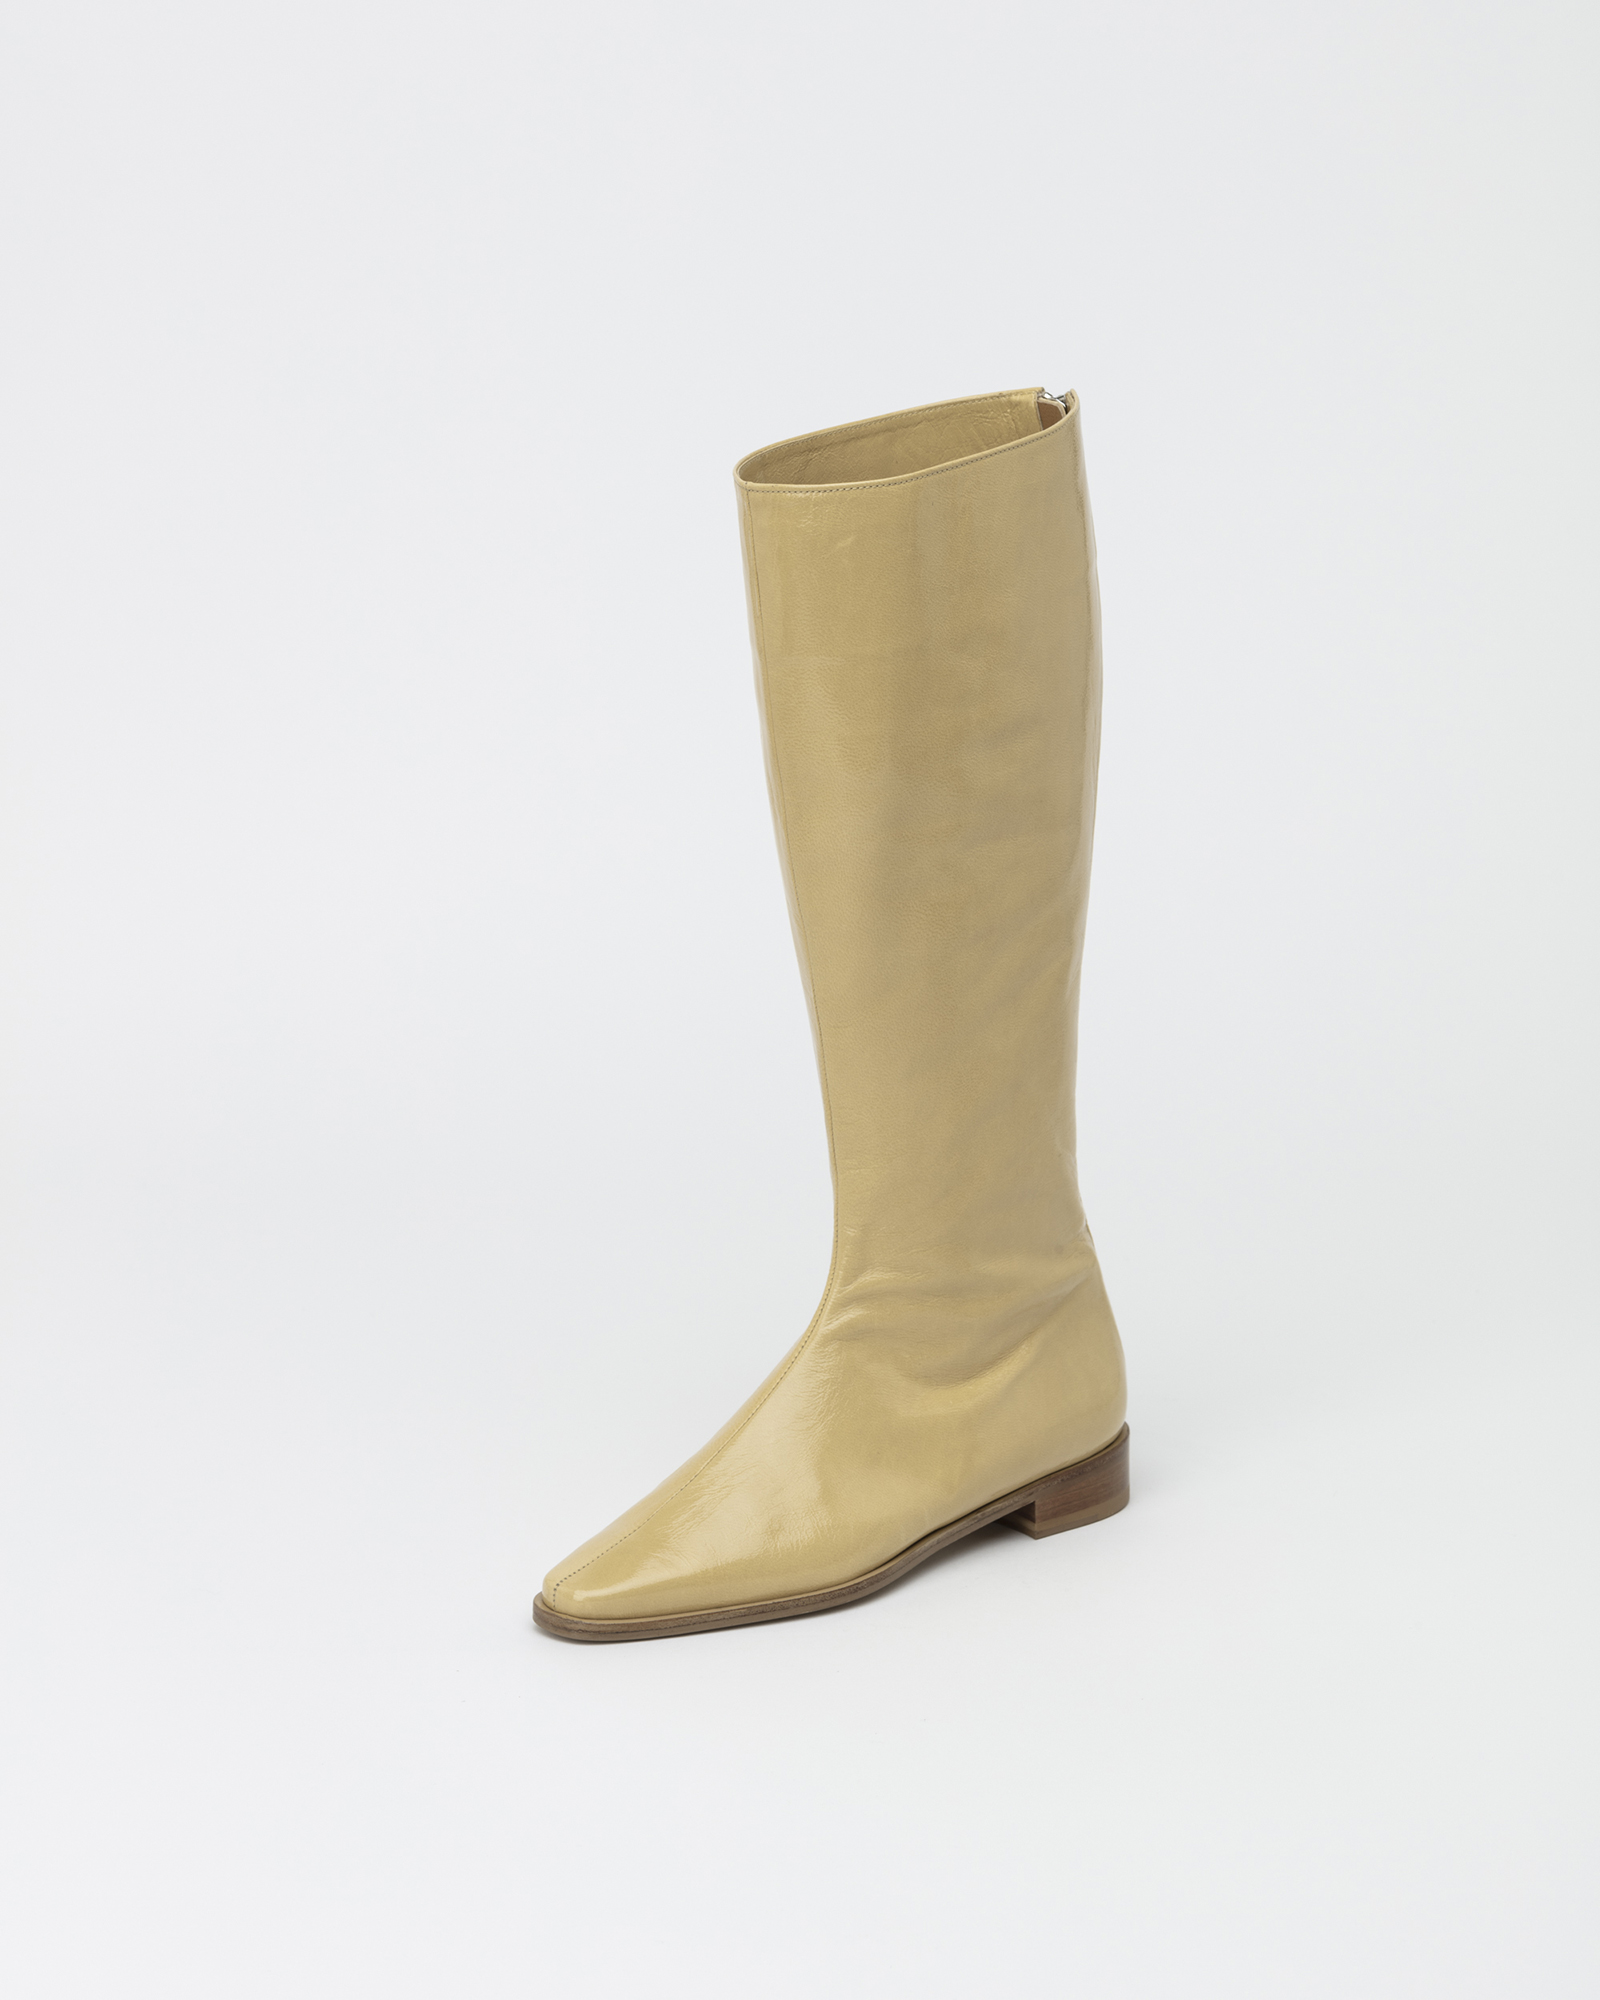 Resin Long Boots in Wrinkled Yellow Patent